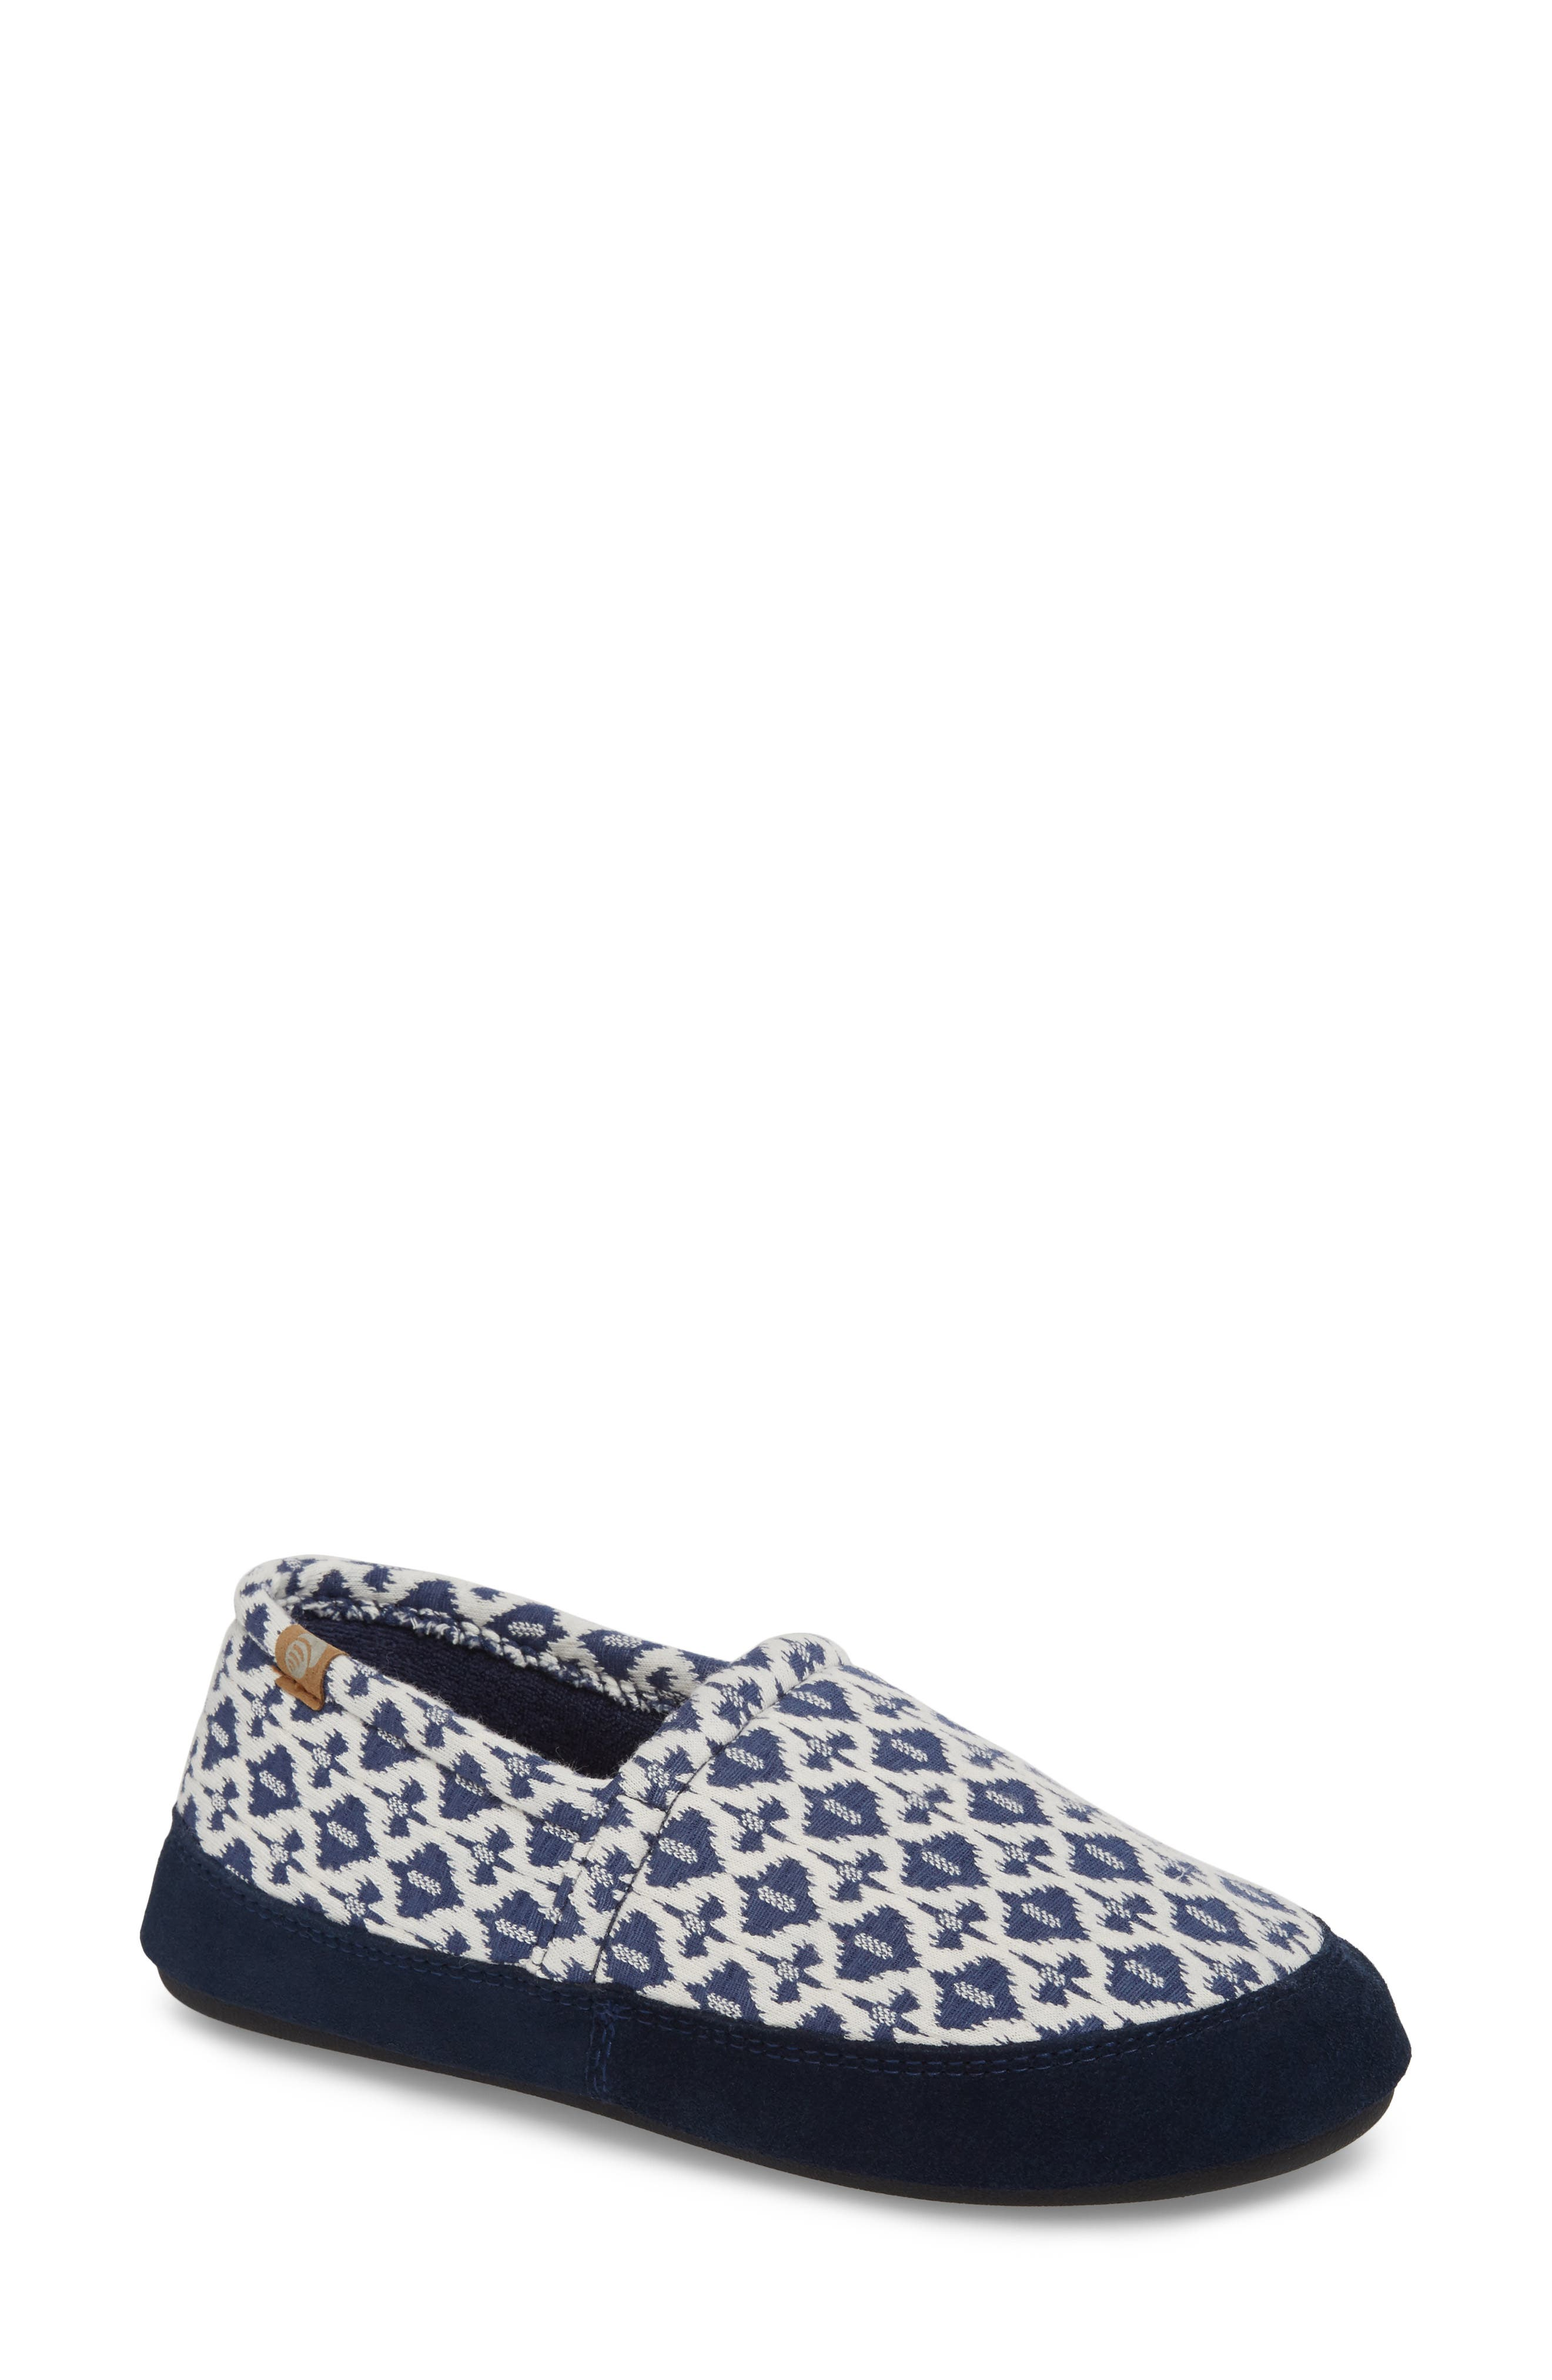 Summer Weight Moc Slipper,                         Main,                         color, Navy Tribal